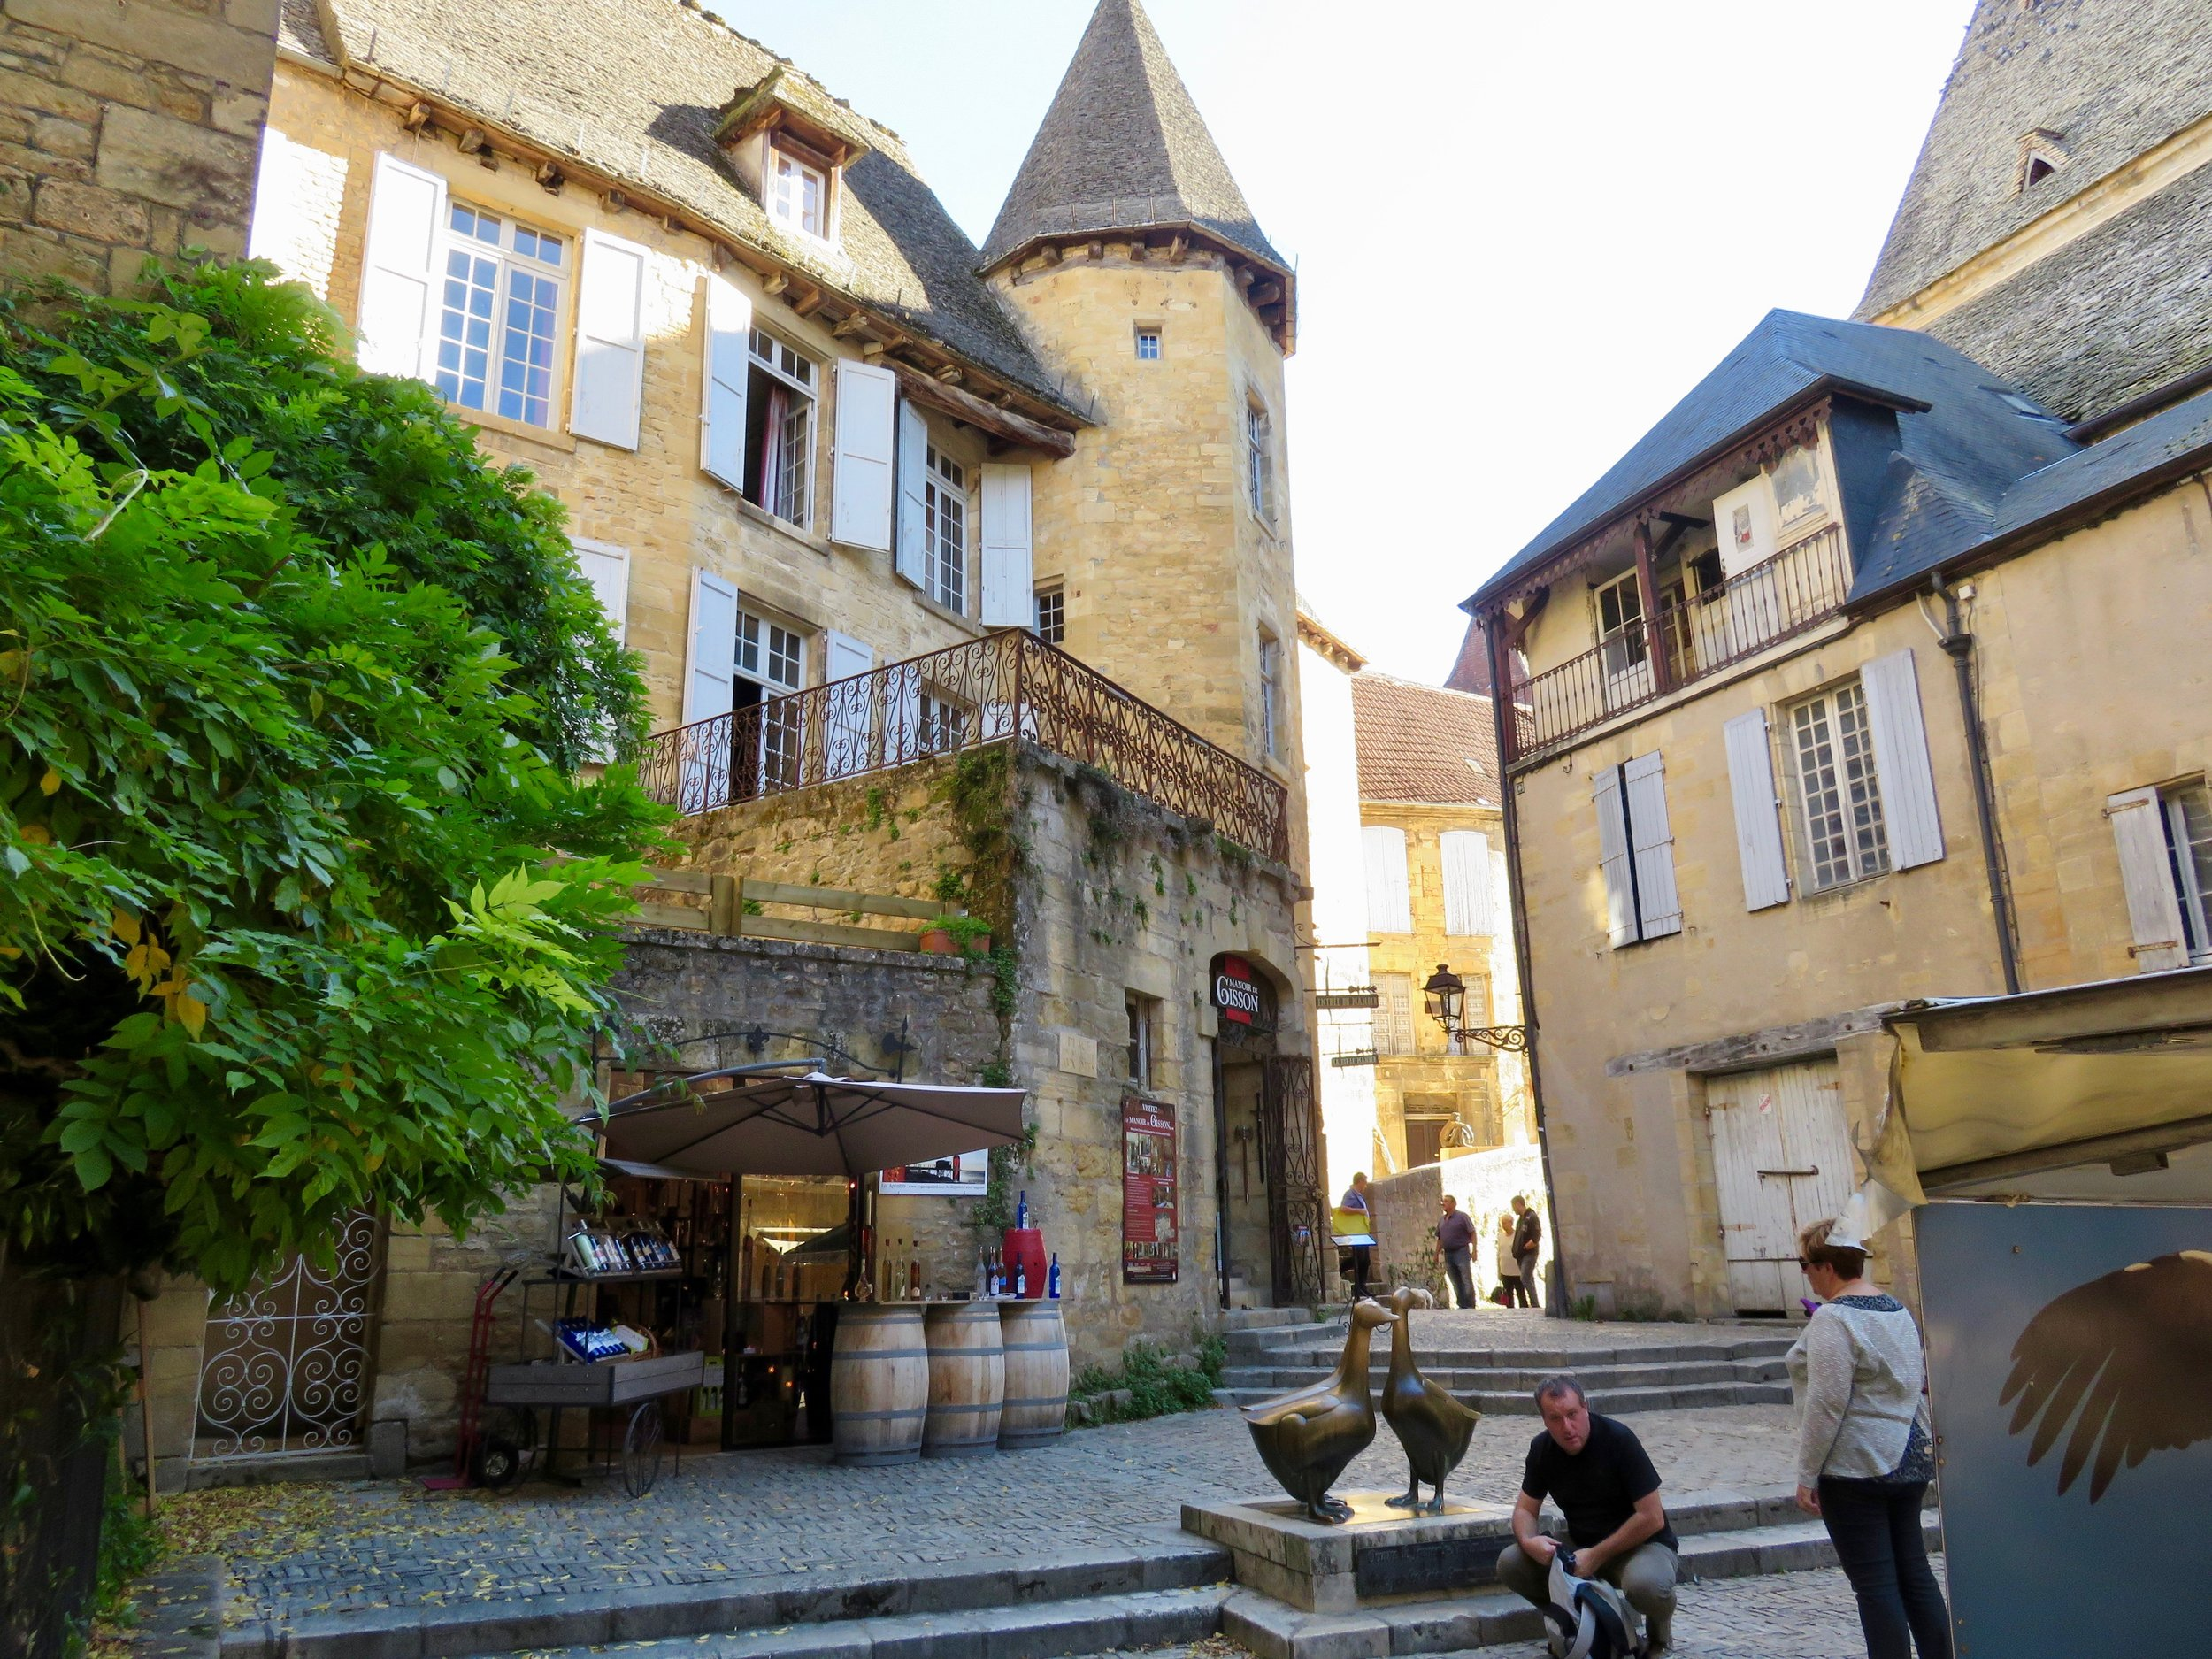 The pate industry is huge in the area around the Dordogne.Sarlat-la-Caneda (above) seemed to be focused on the sale of all varieties of the delicacy.